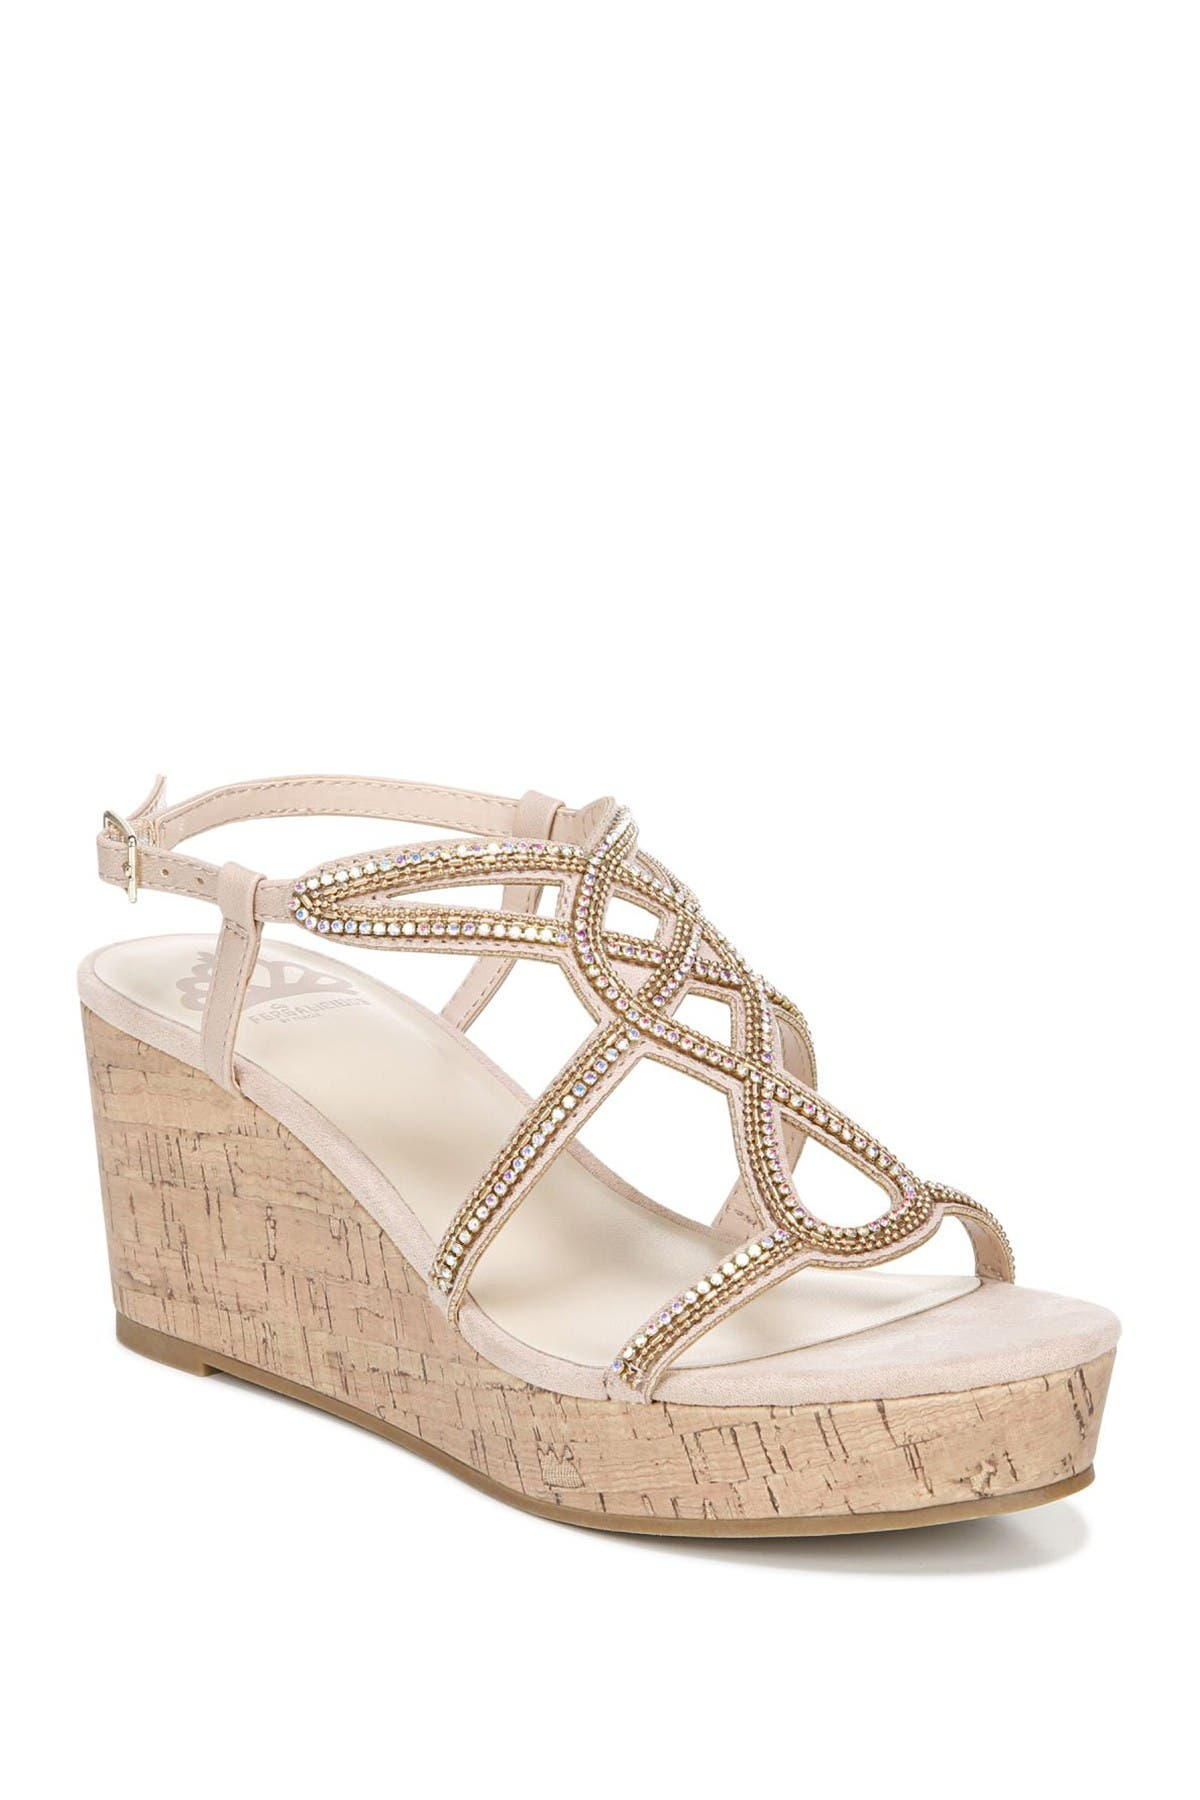 Image of Fergalicious Mimic Embellished Platform Wedge Sandal